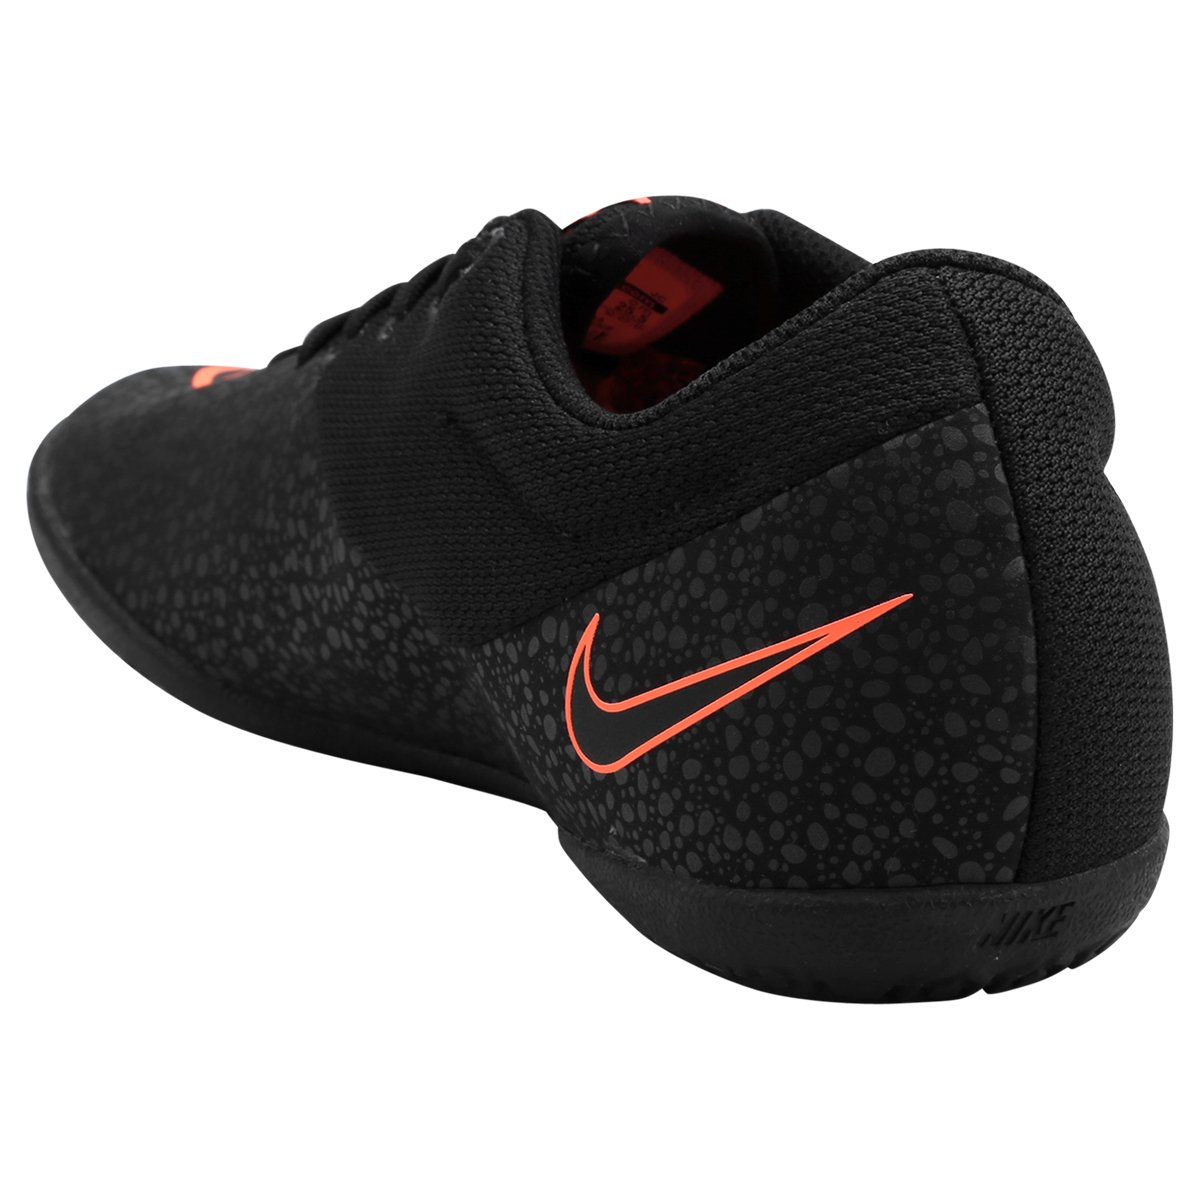 c10e2ab46a where can i buy chuteira nike mercurial pro ic futsal bf760 2e3be